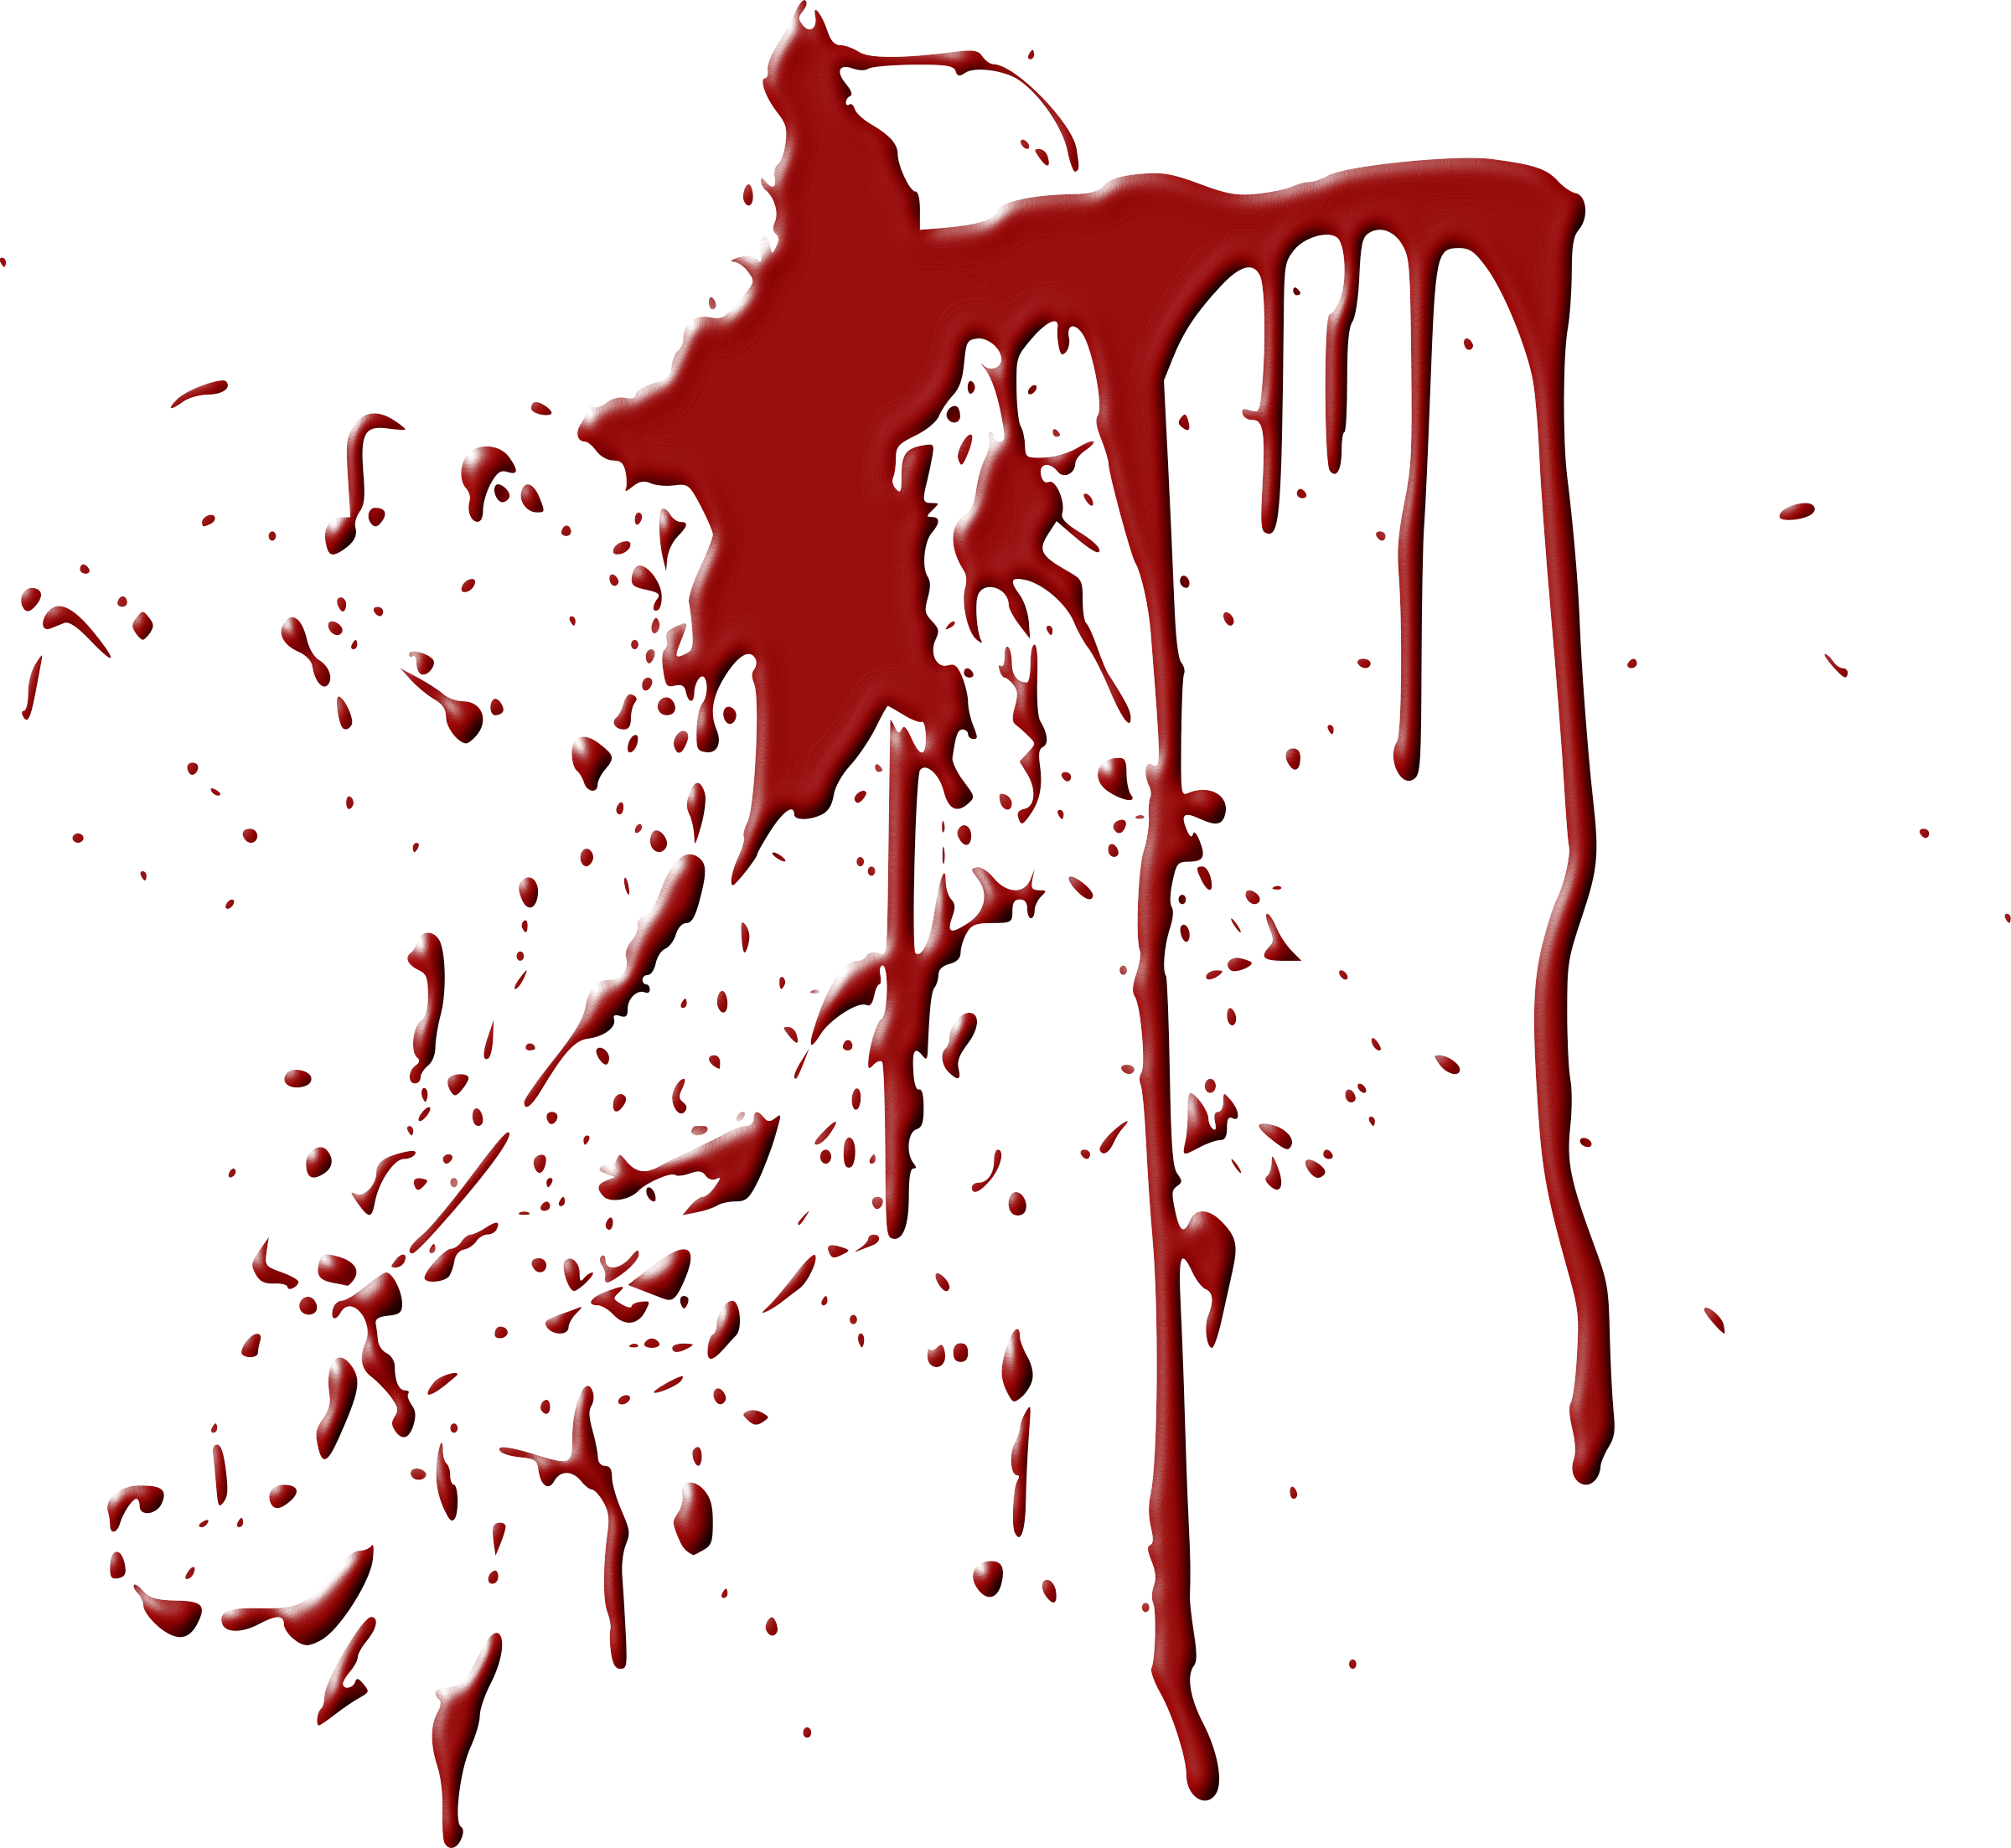 Realistic dripping blood png. Transparent images all clipart